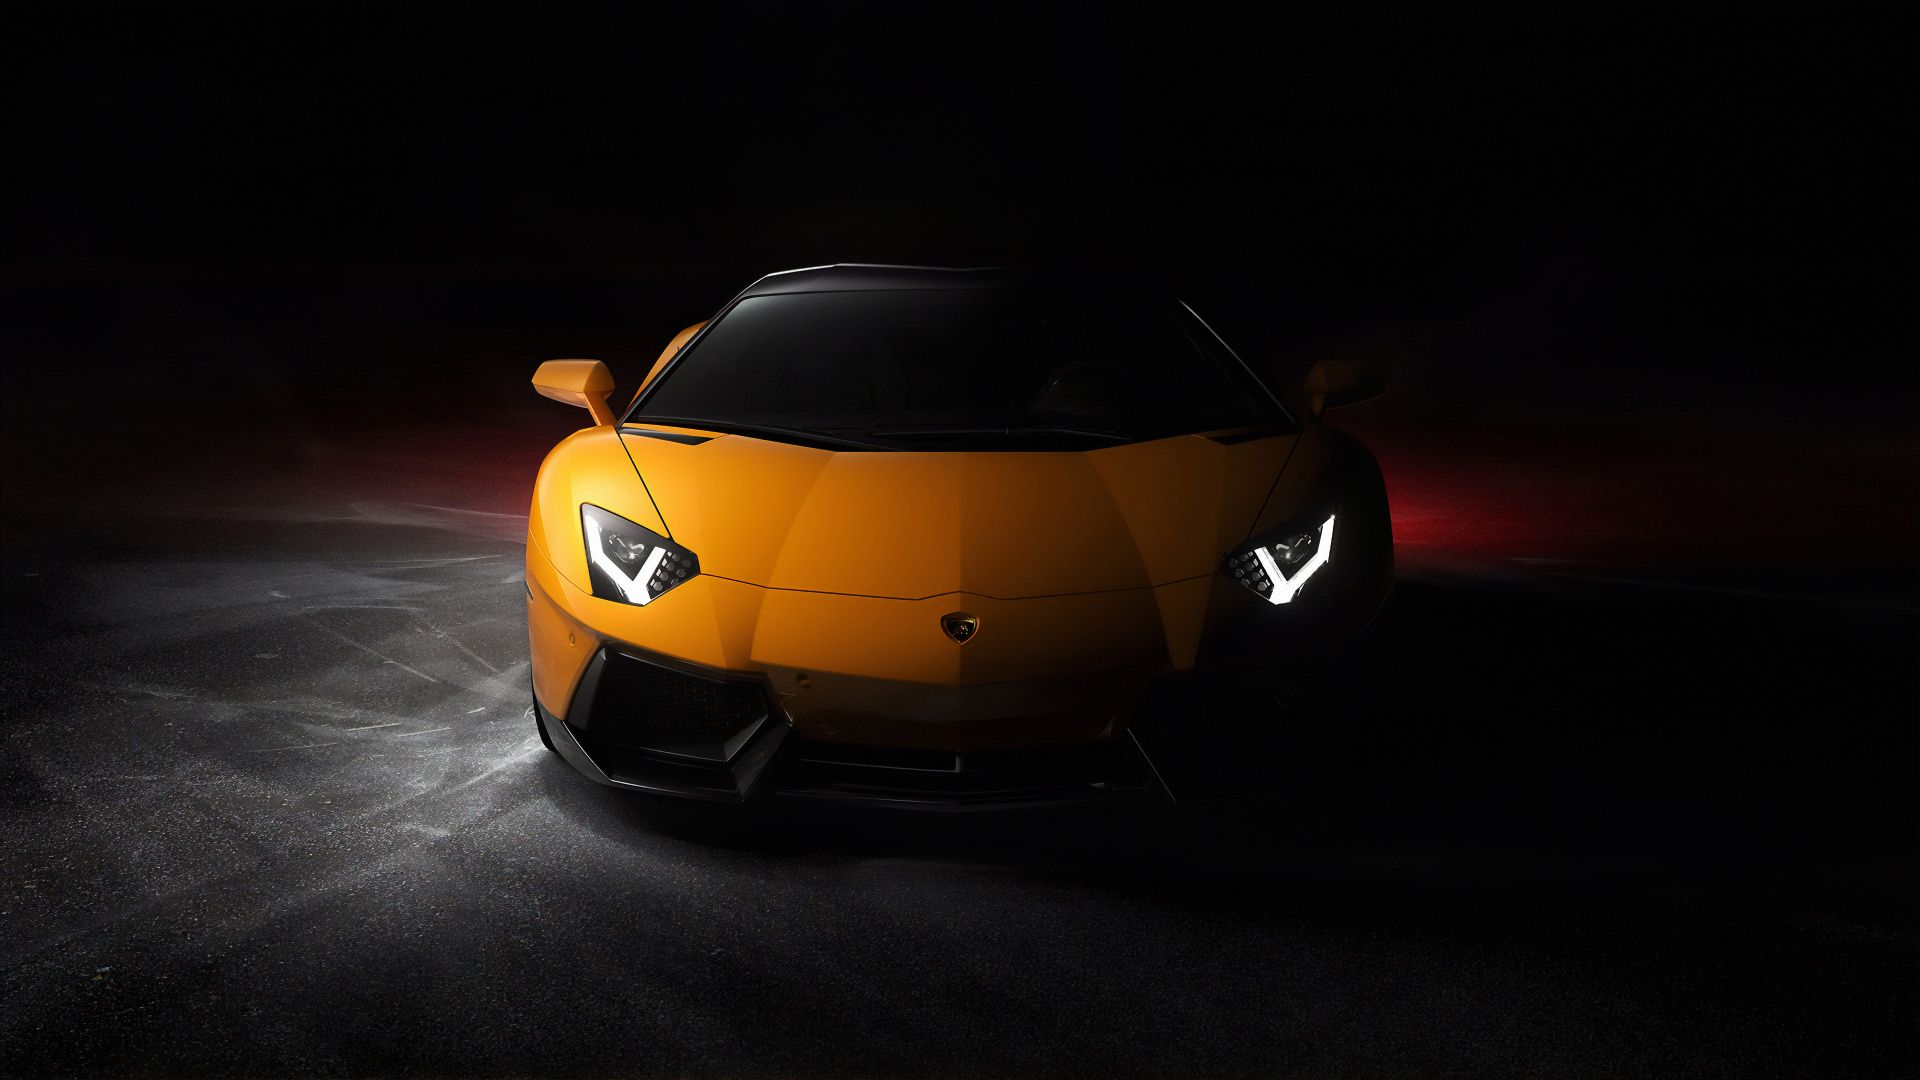 1920x1080 Yellow Lamborghini Aventador Front Wallpaper